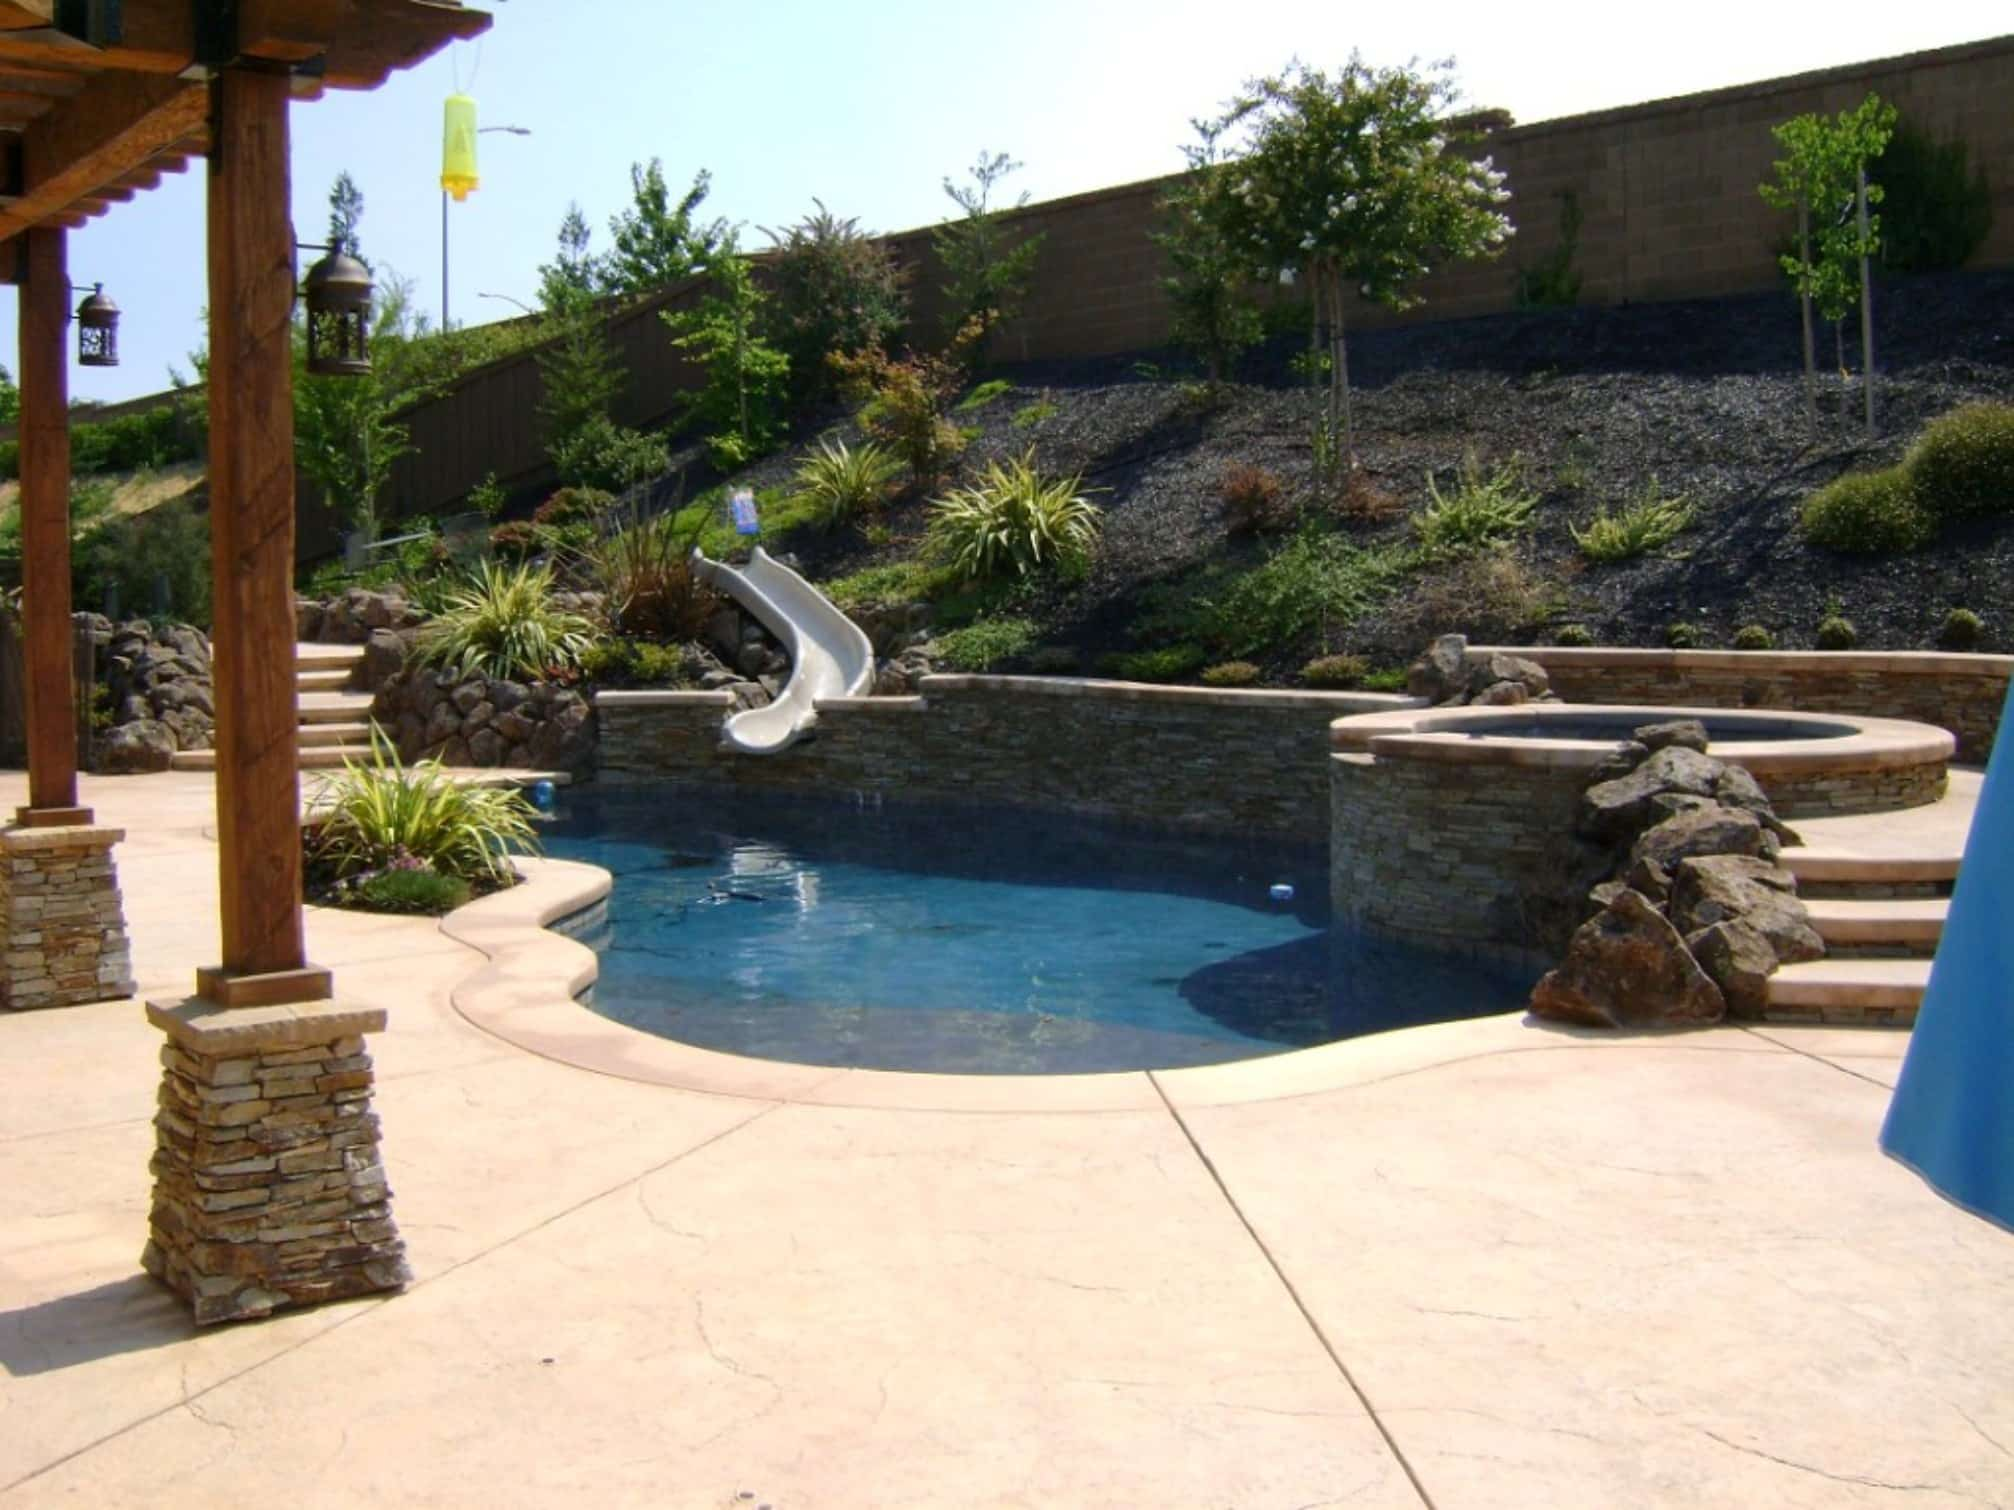 Small Backyard Can Have Pools Too - Landscapes Unlimited